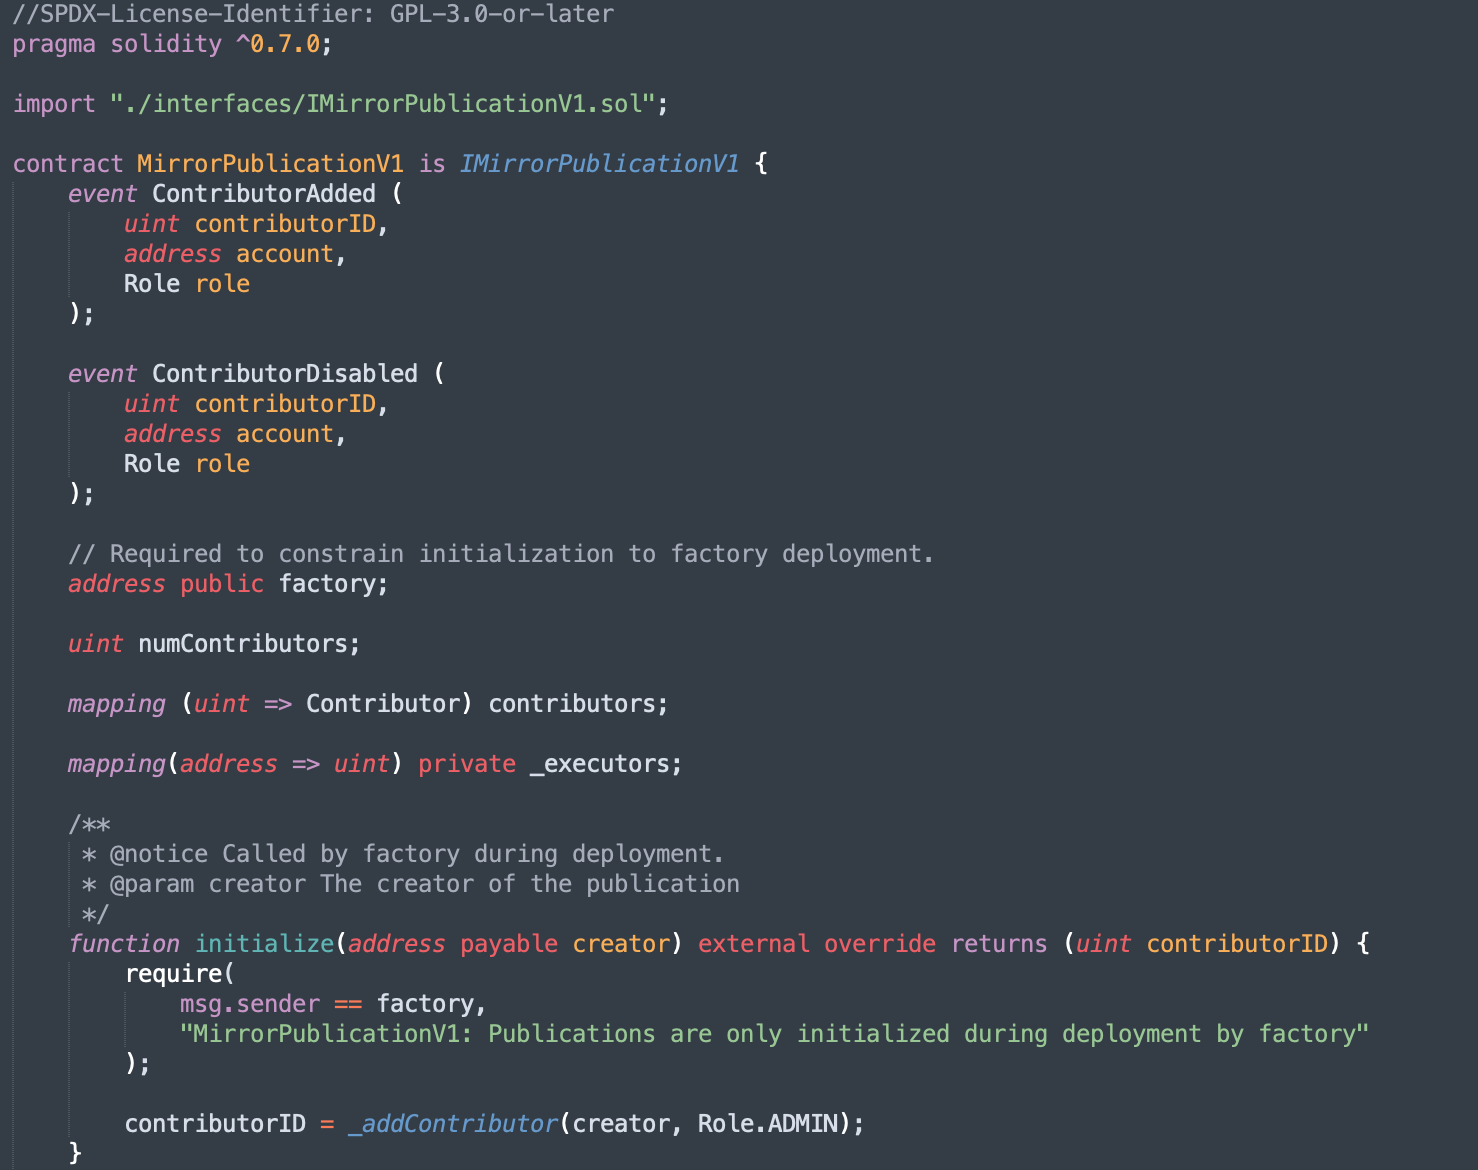 Playing with some Solidity code to make the Publication contract idea more tangible